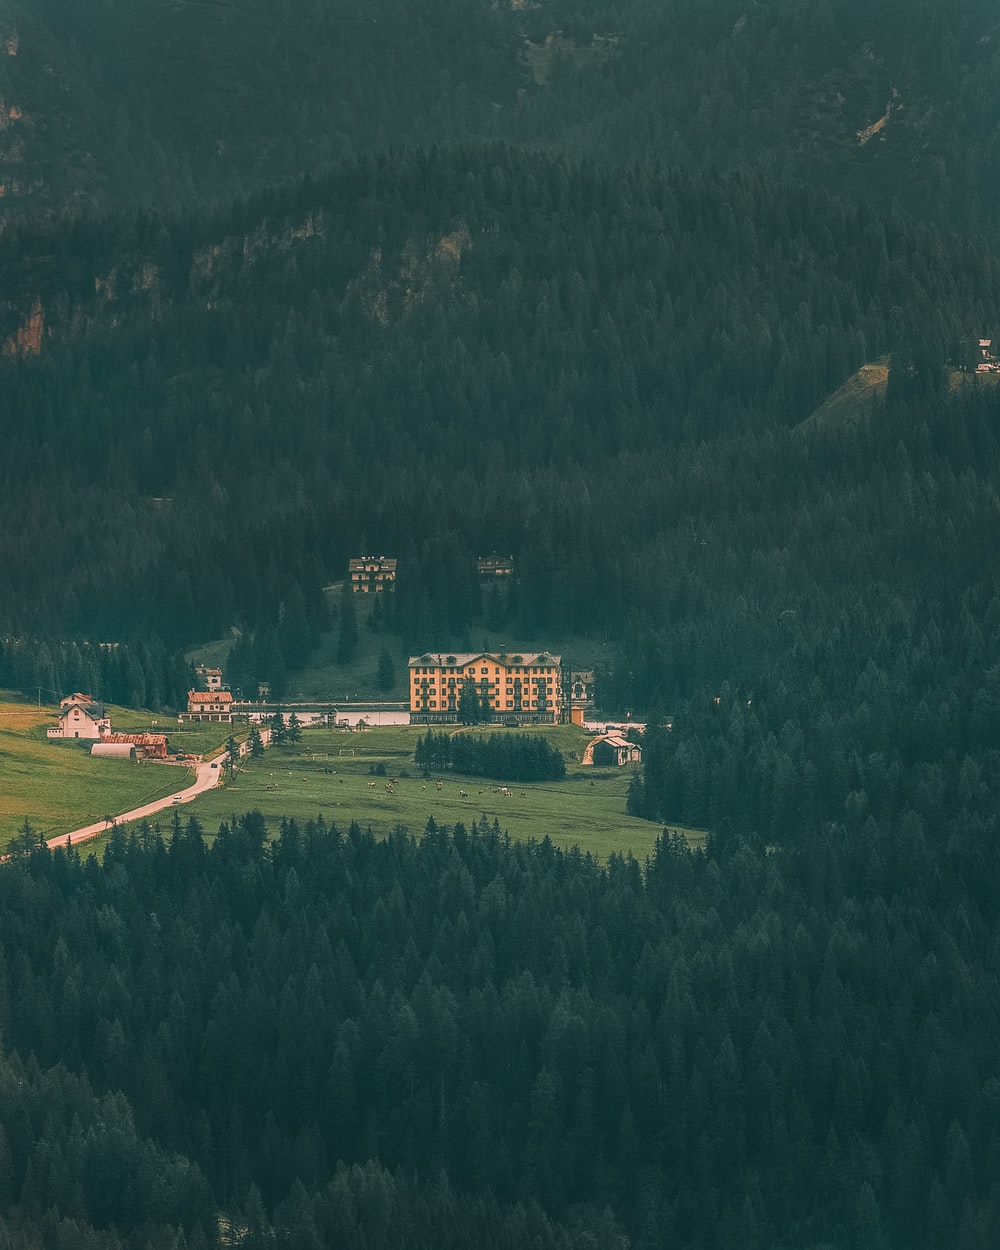 aerial view of green trees and brown house during daytime